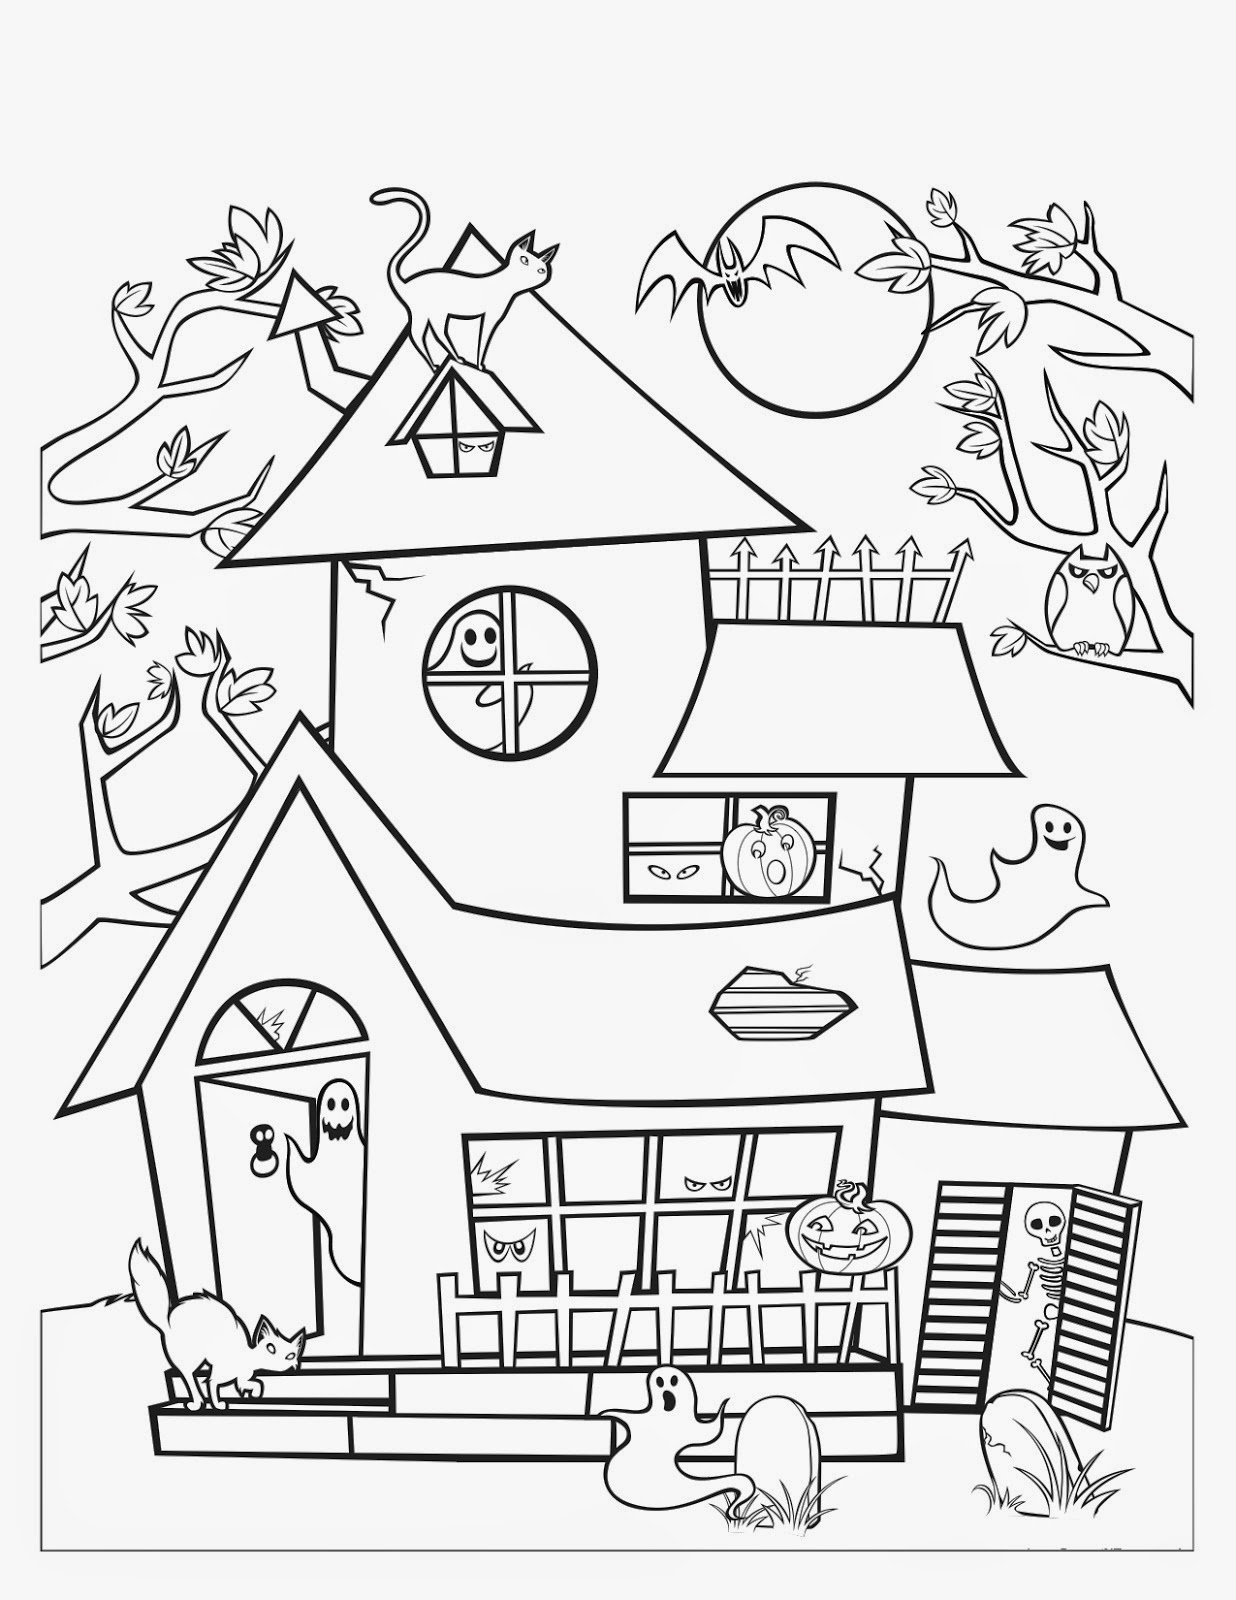 haunted house printable coloring pages haunted house coloring page pdf coloring pages house printable pages haunted coloring